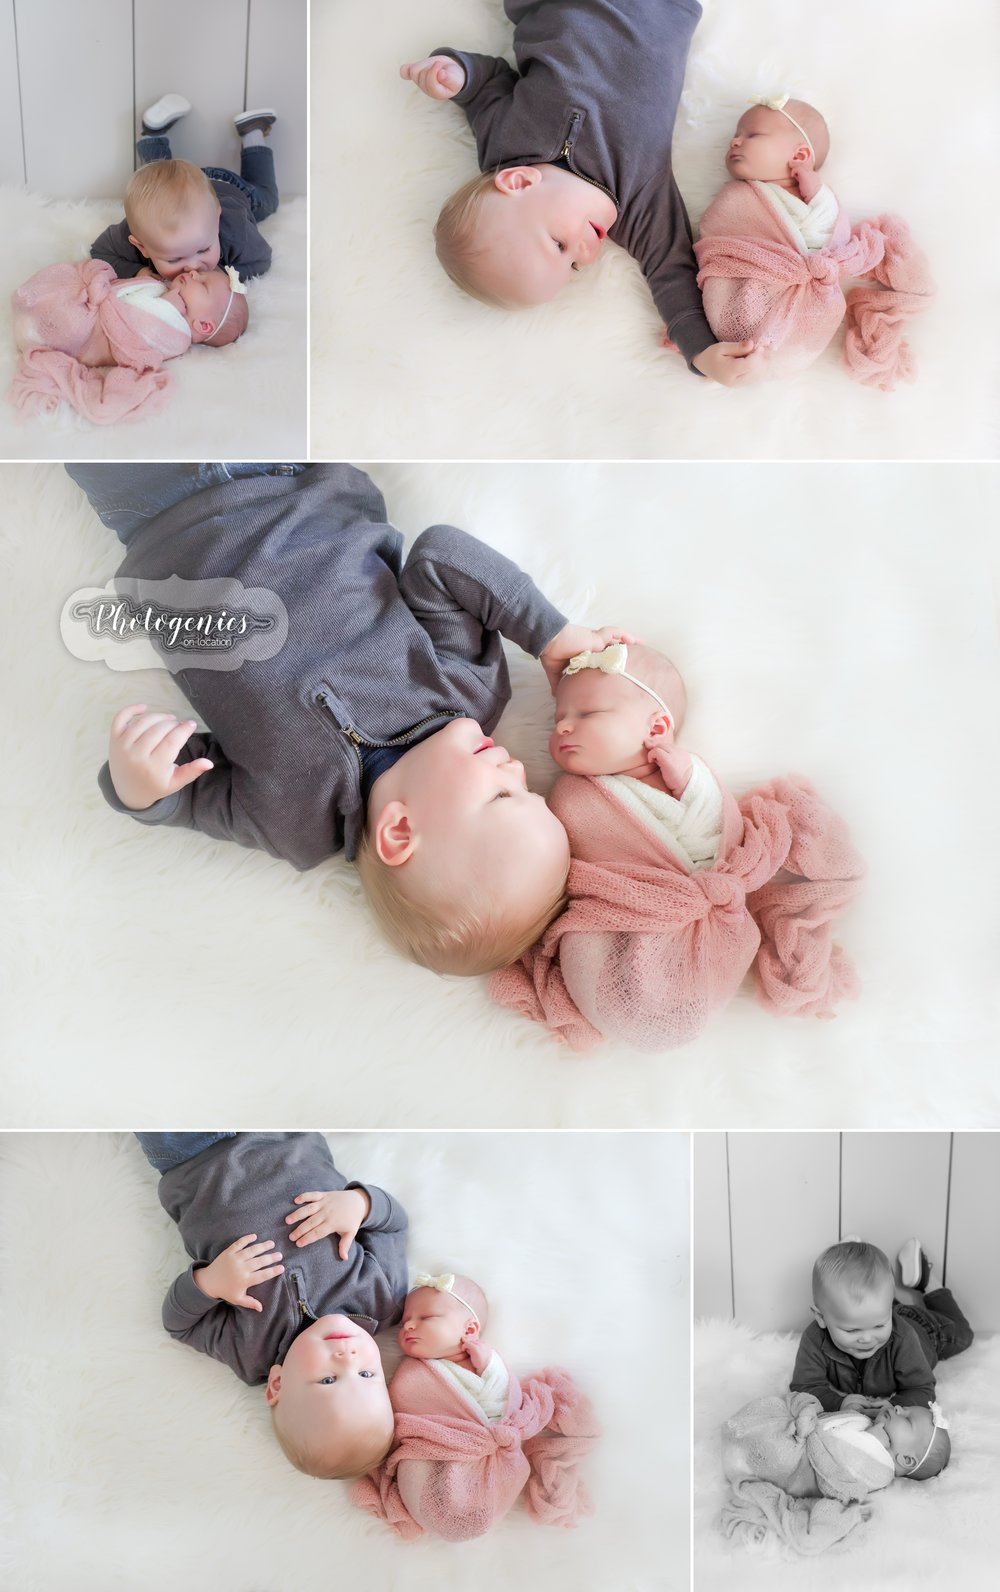 newborn_girl_sibling_photography_family_poses_ideas_props_studio_color_vibrant_unique_simple_photography